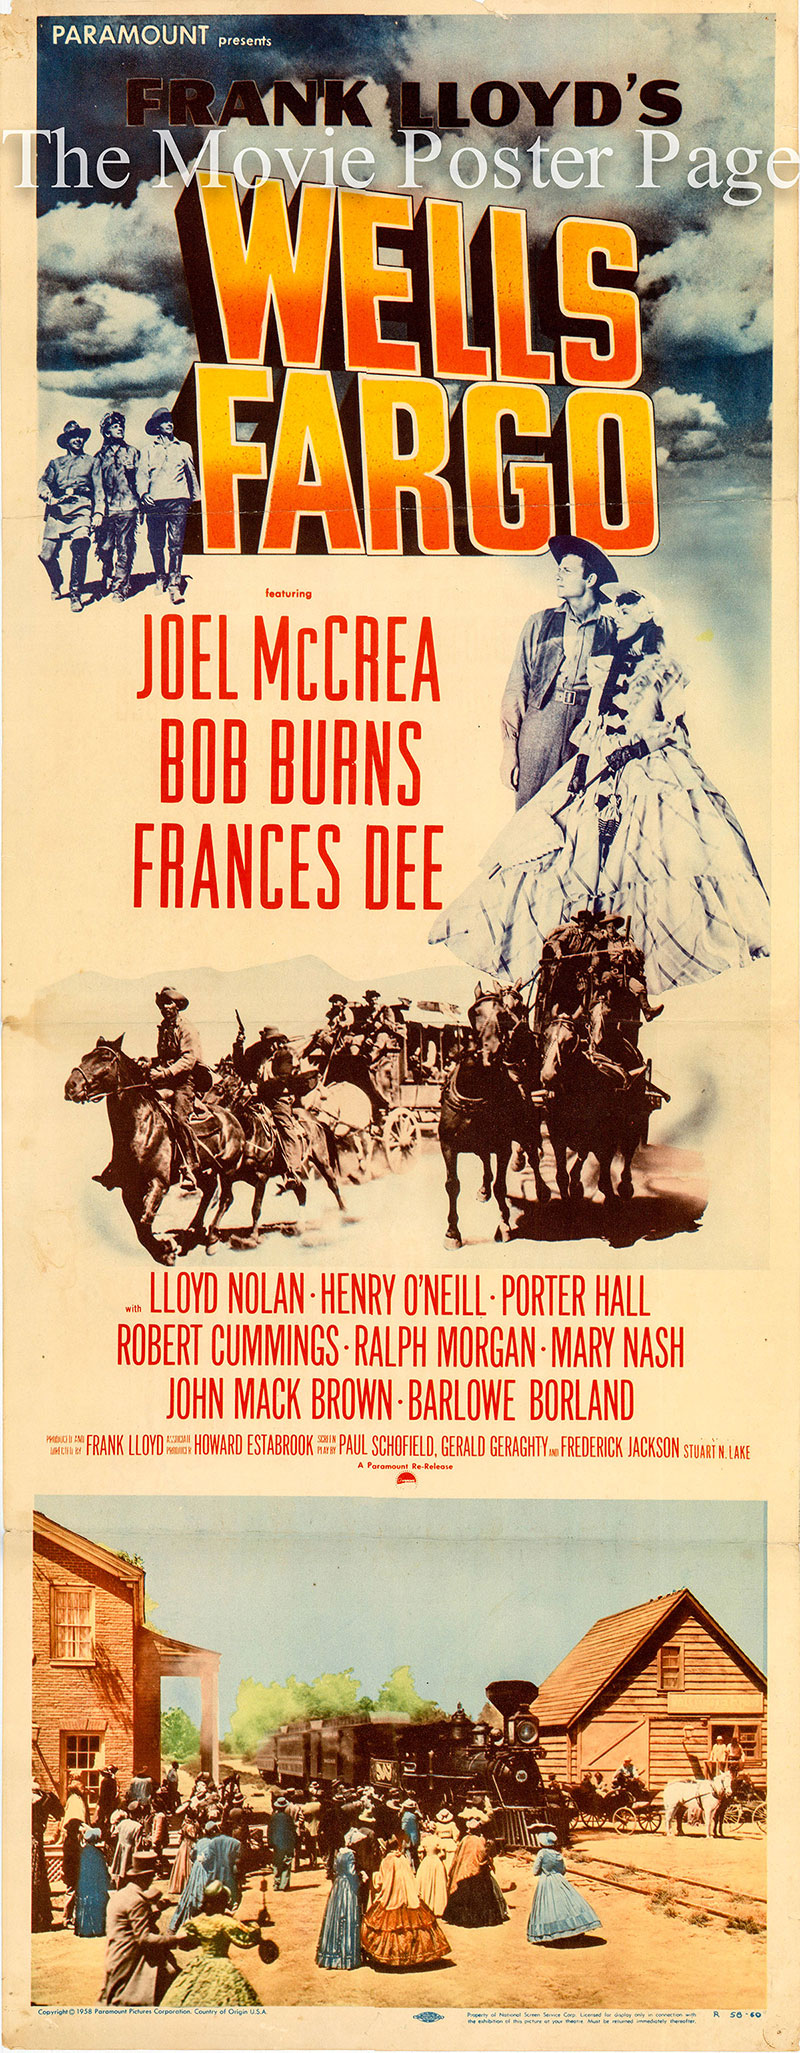 Pictured is a US insert promotional poster for a 1950 rerelease of the 1937 Frank Lloyd film Wells Fargo starring Joel McCrea.